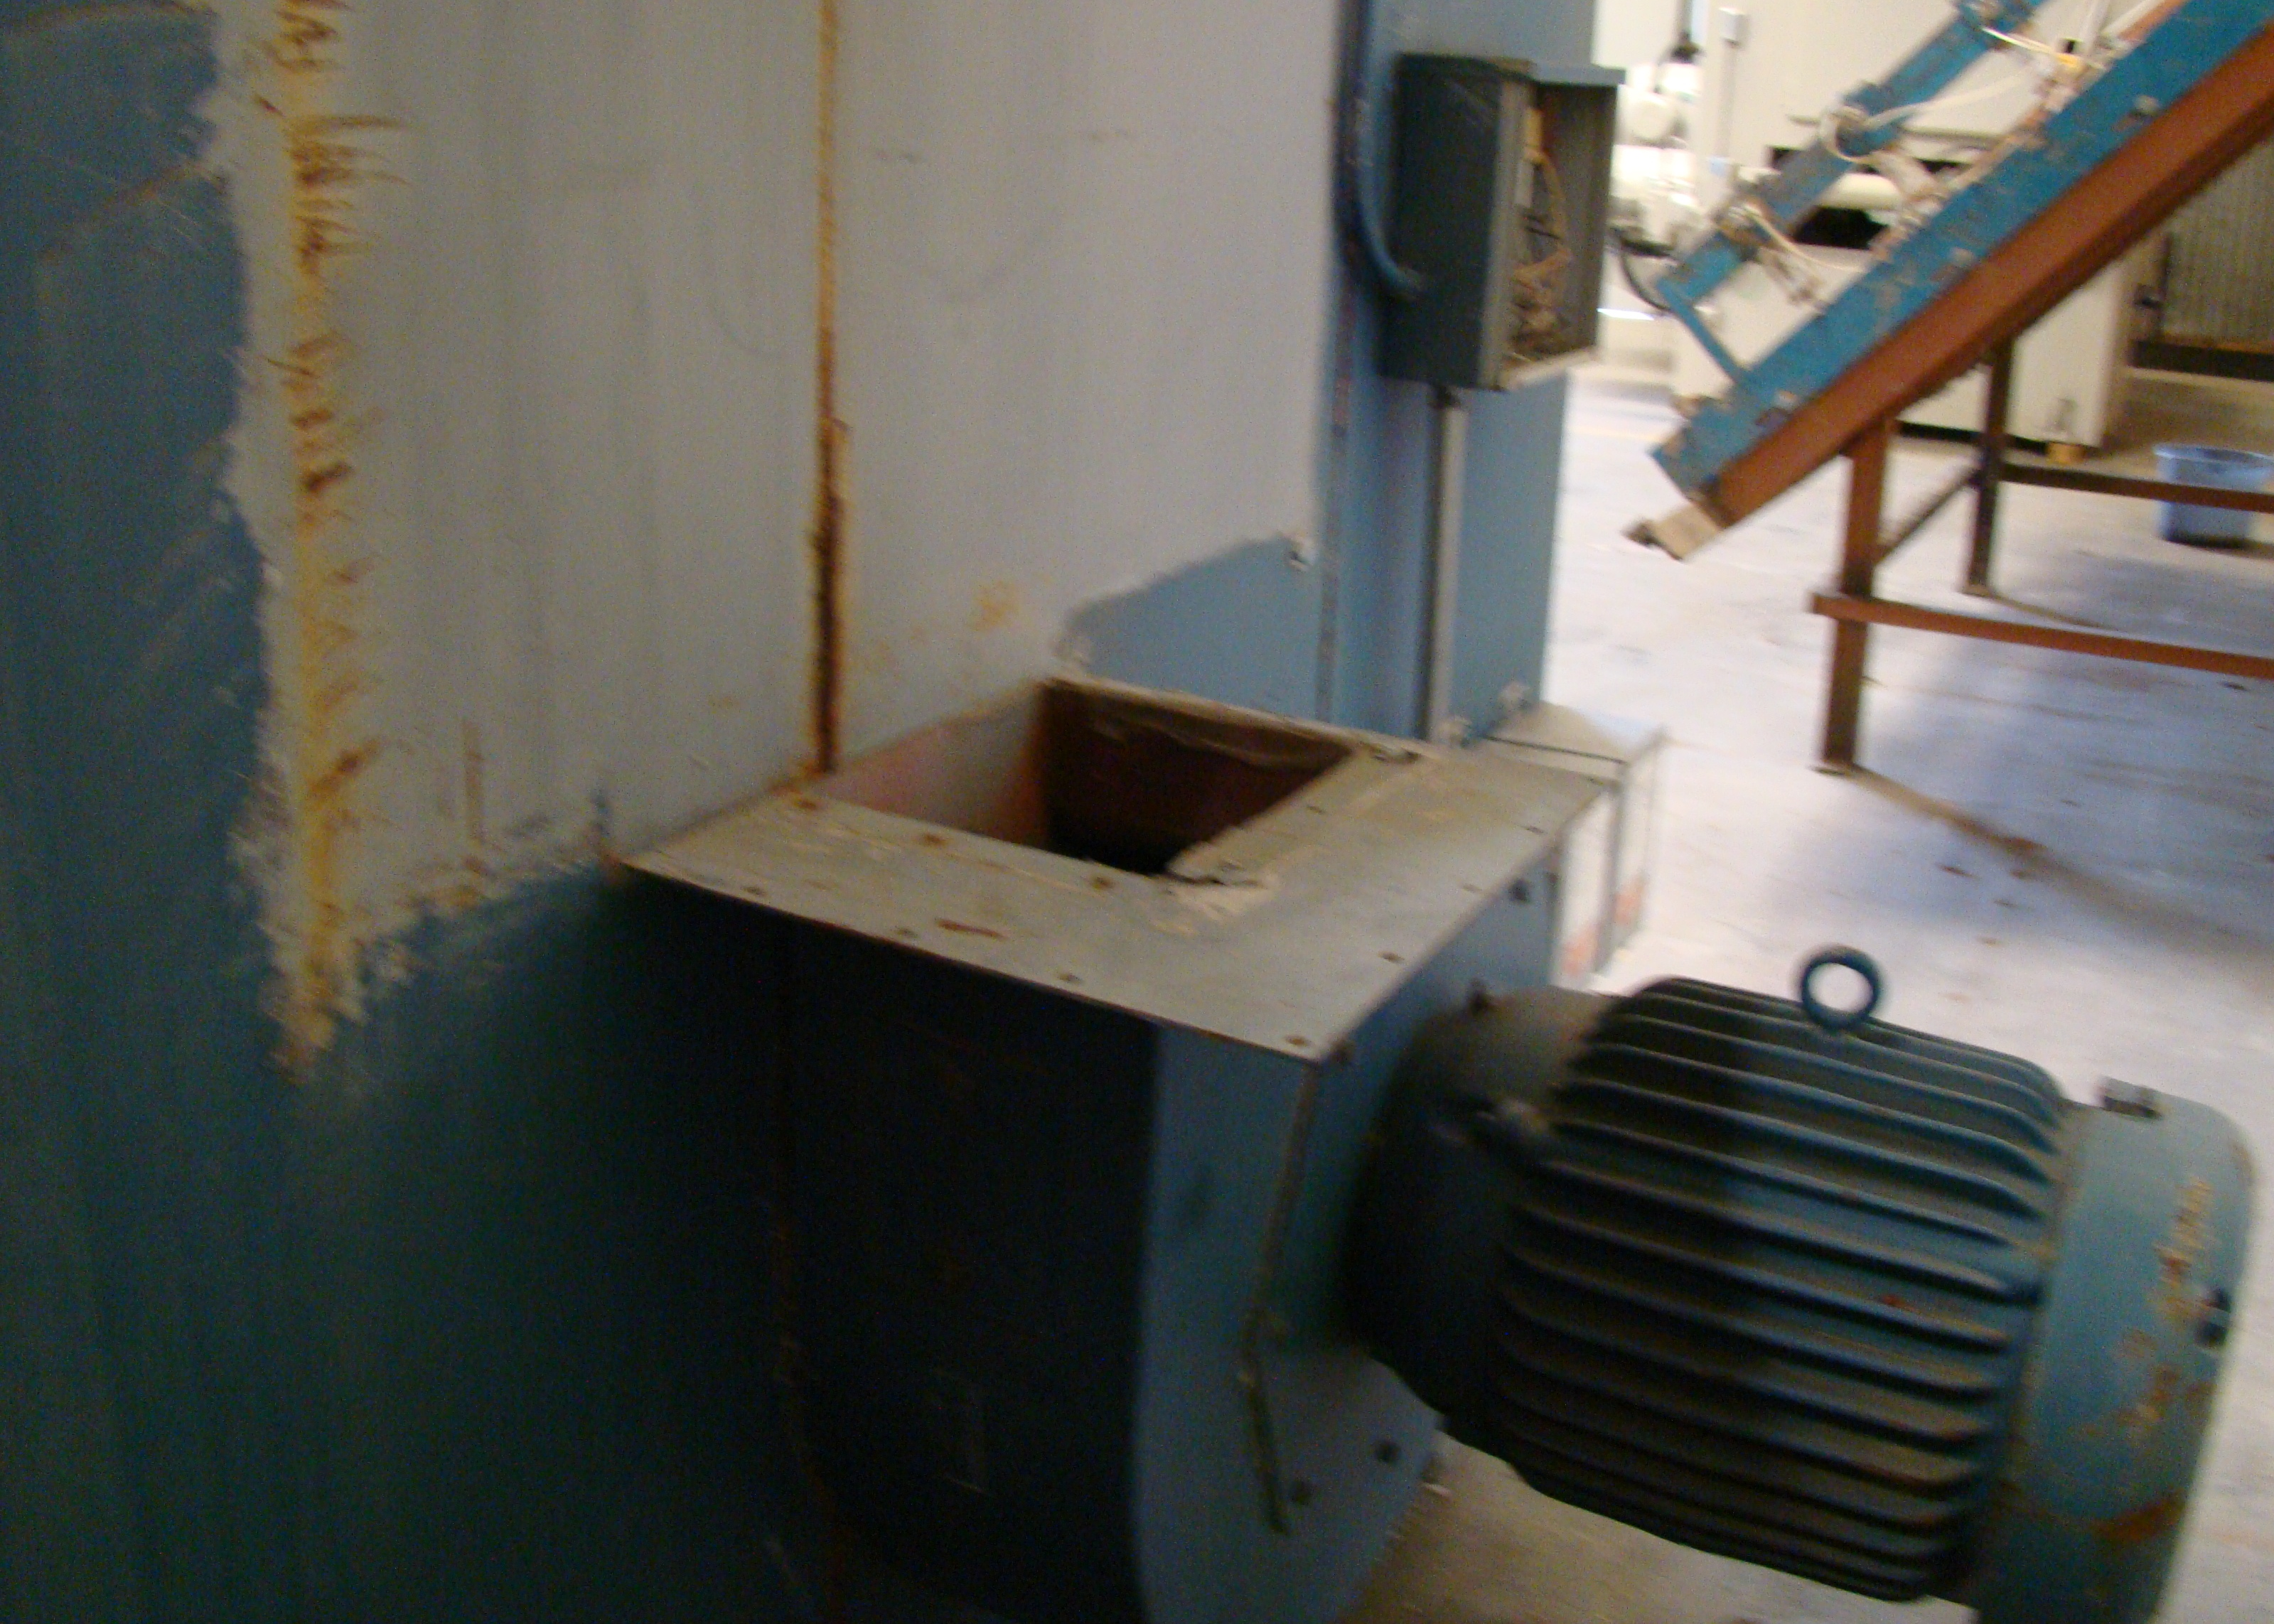 Torit Dust Collector Bag House, Model: MIC-770-455 230/460Volts 15HP 3Phase - Image 9 of 11